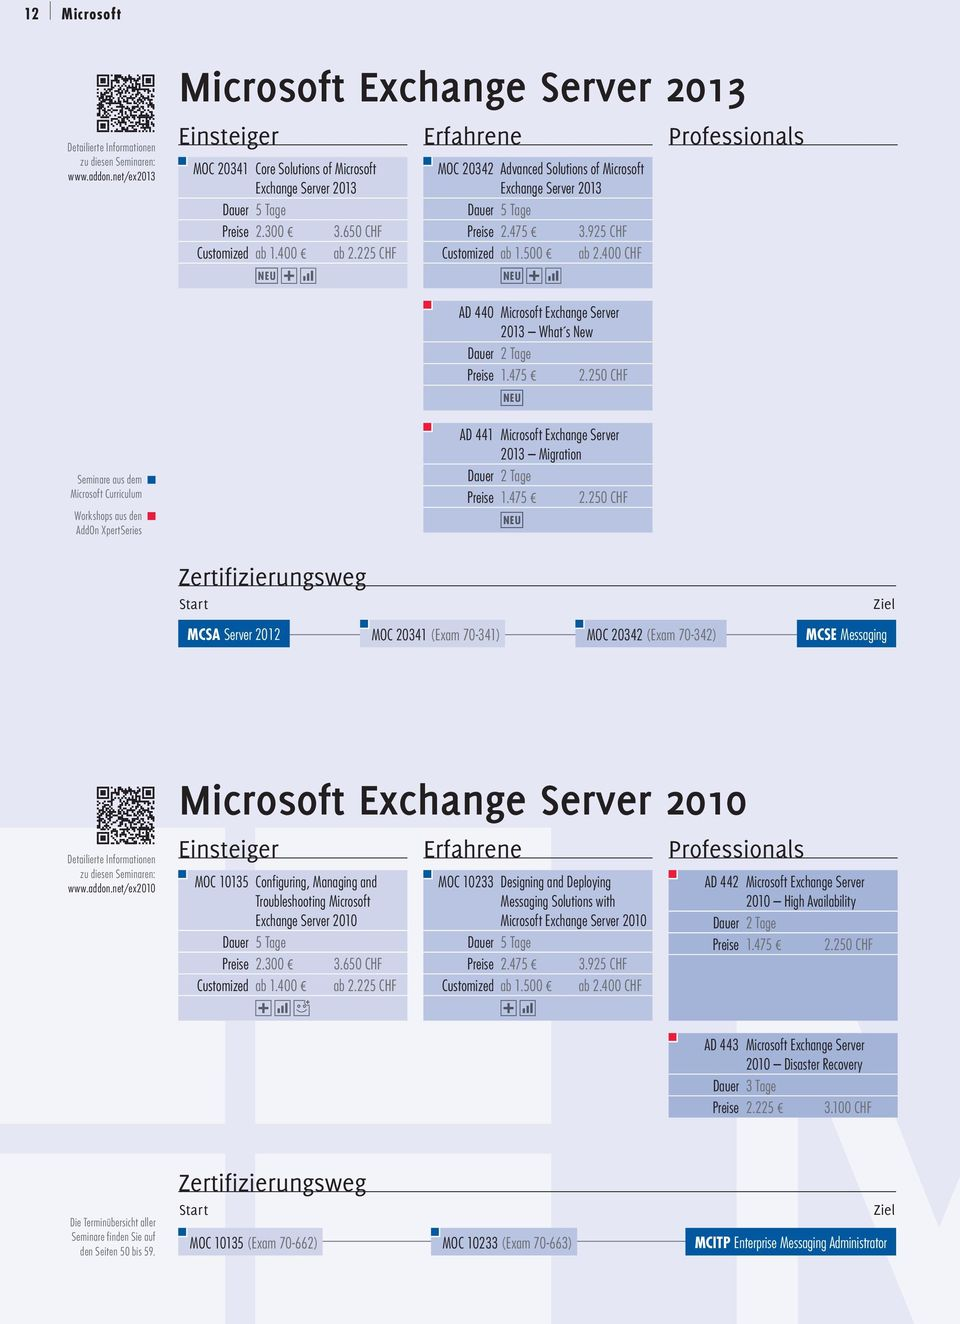 225 CHF MOC 20342 Advanced Solutions of Microsoft Exchange Server 2013 Preise 2.475 3.925 CHF Customized ab 1.500 ab 2.400 CHF AD 440 Microsoft Exchange Server 2013 What s New Dauer 2 Tage Preise 1.